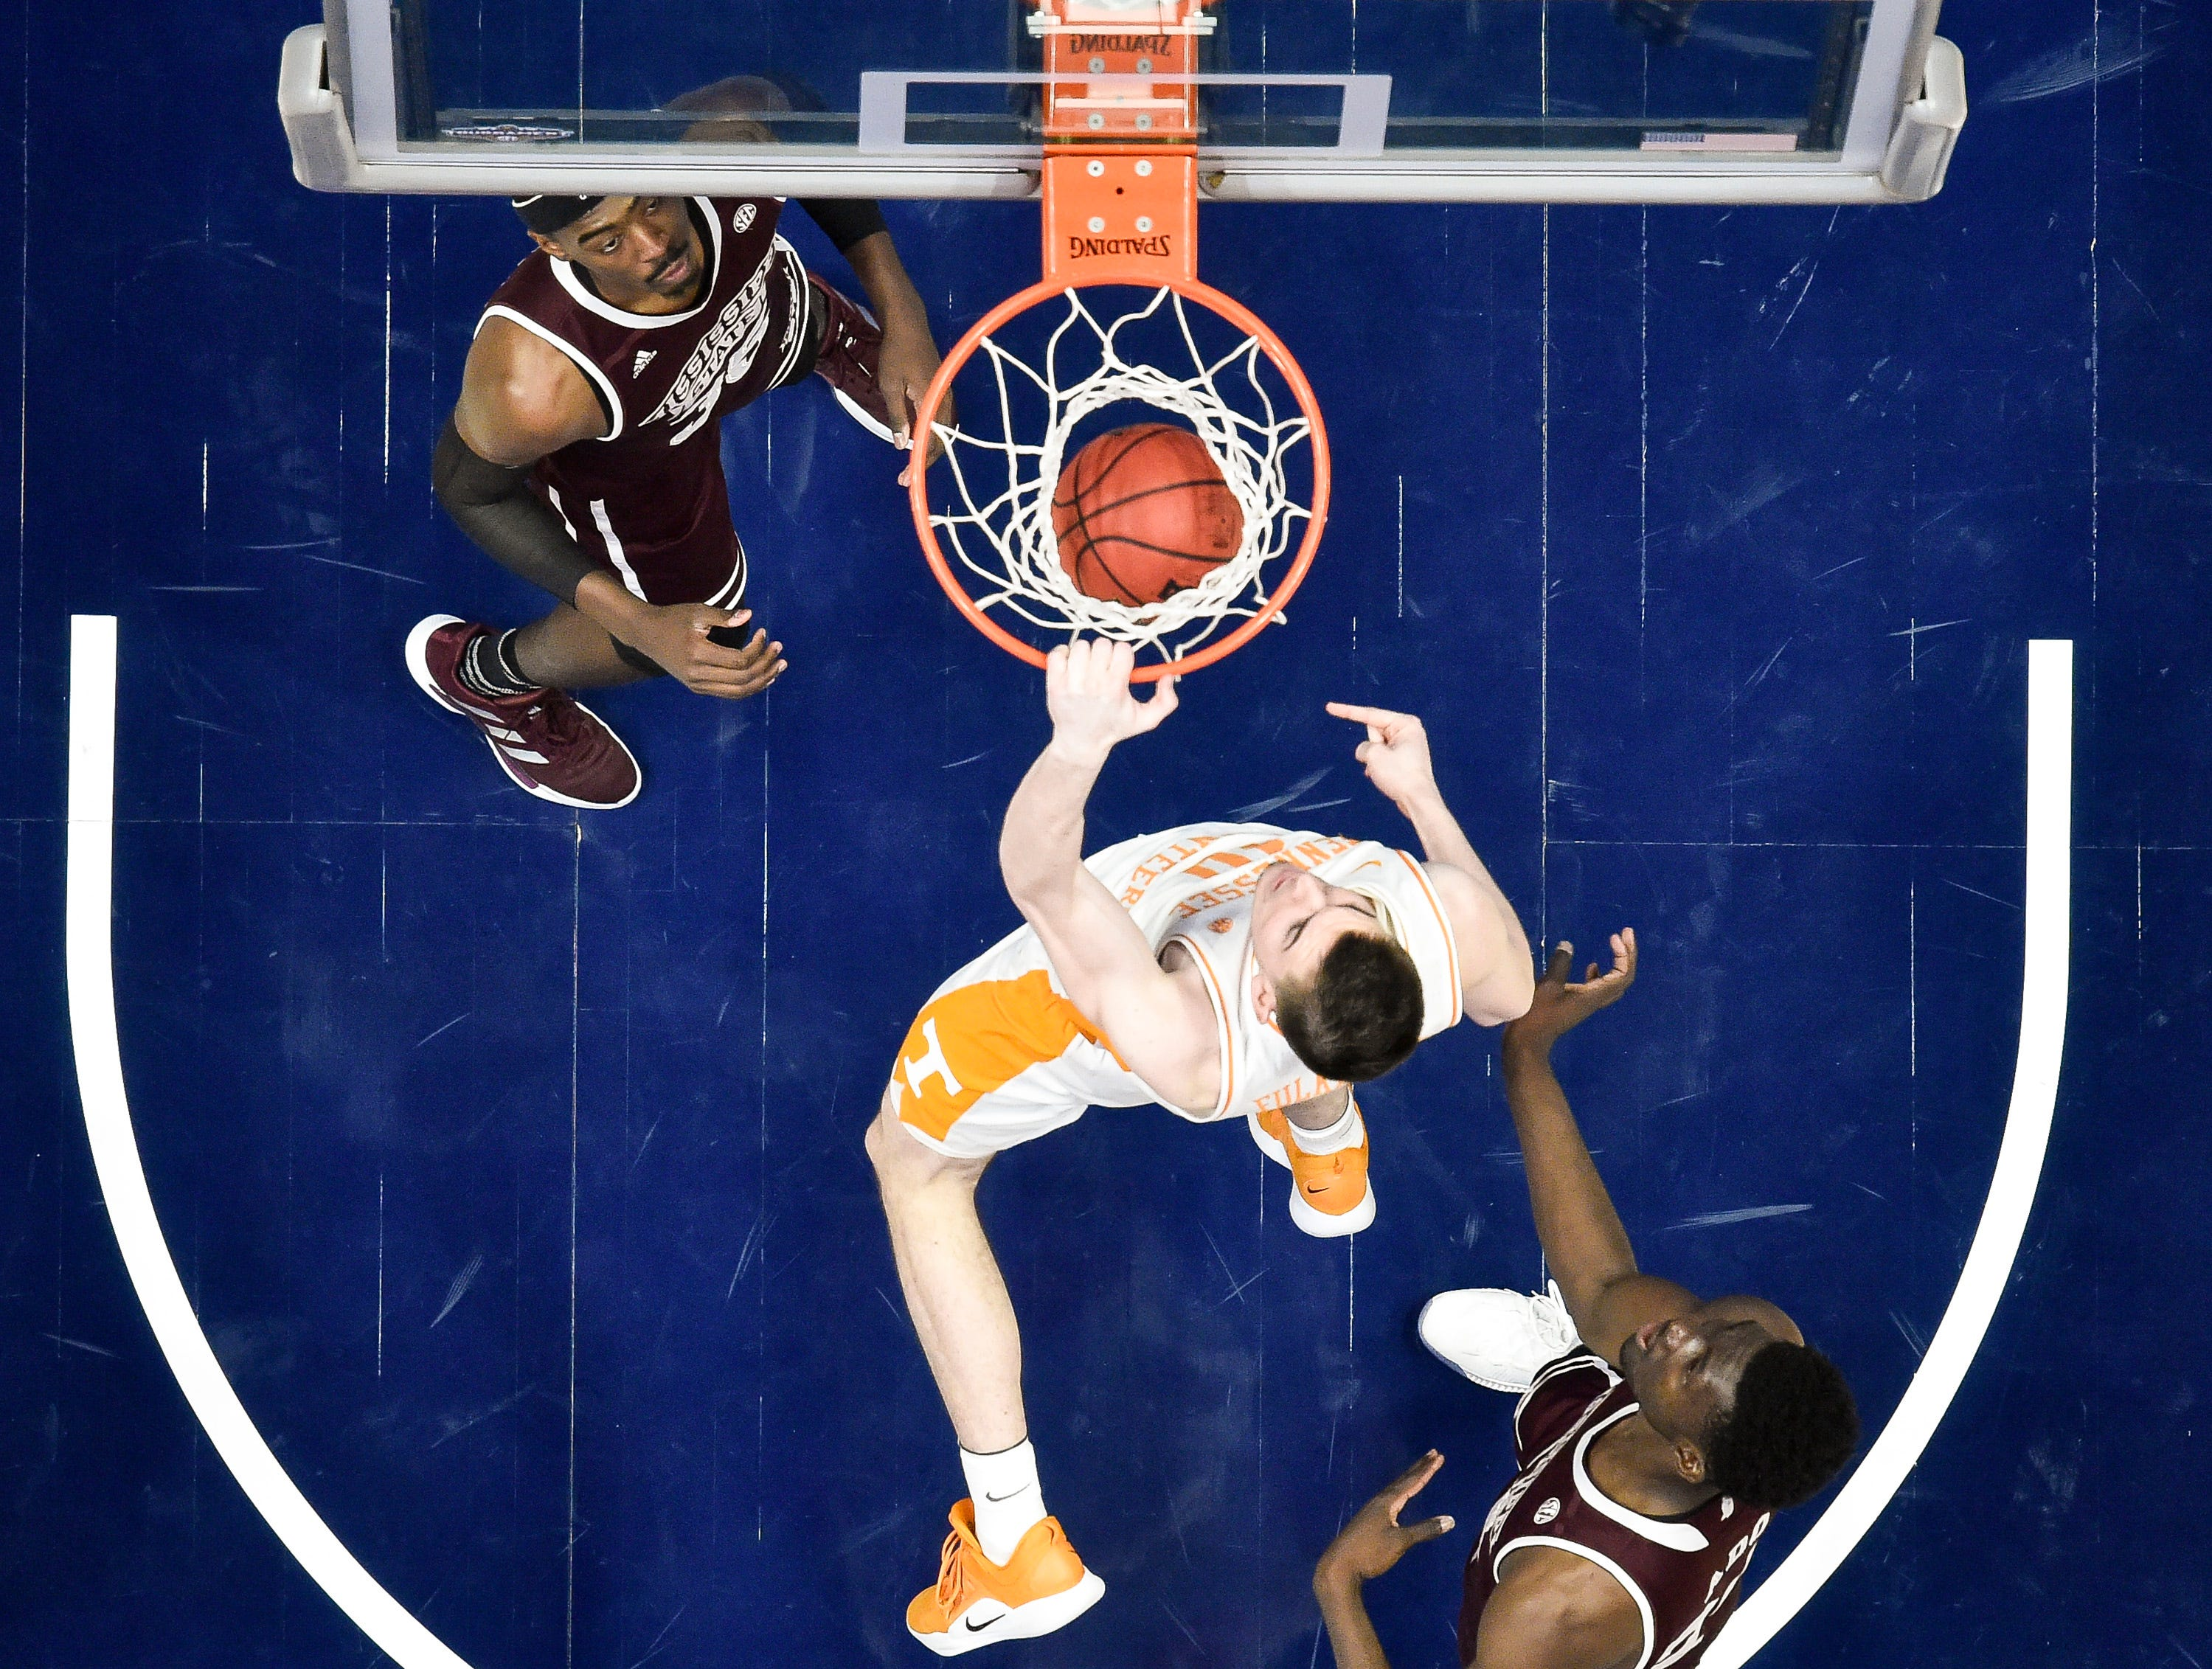 Tennessee forward John Fulkerson (10) dunks against Mississippi State during the first half of the SEC Men's Basketball Tournament game at Bridgestone Arena in Nashville, Tenn., Friday, March 15, 2019.